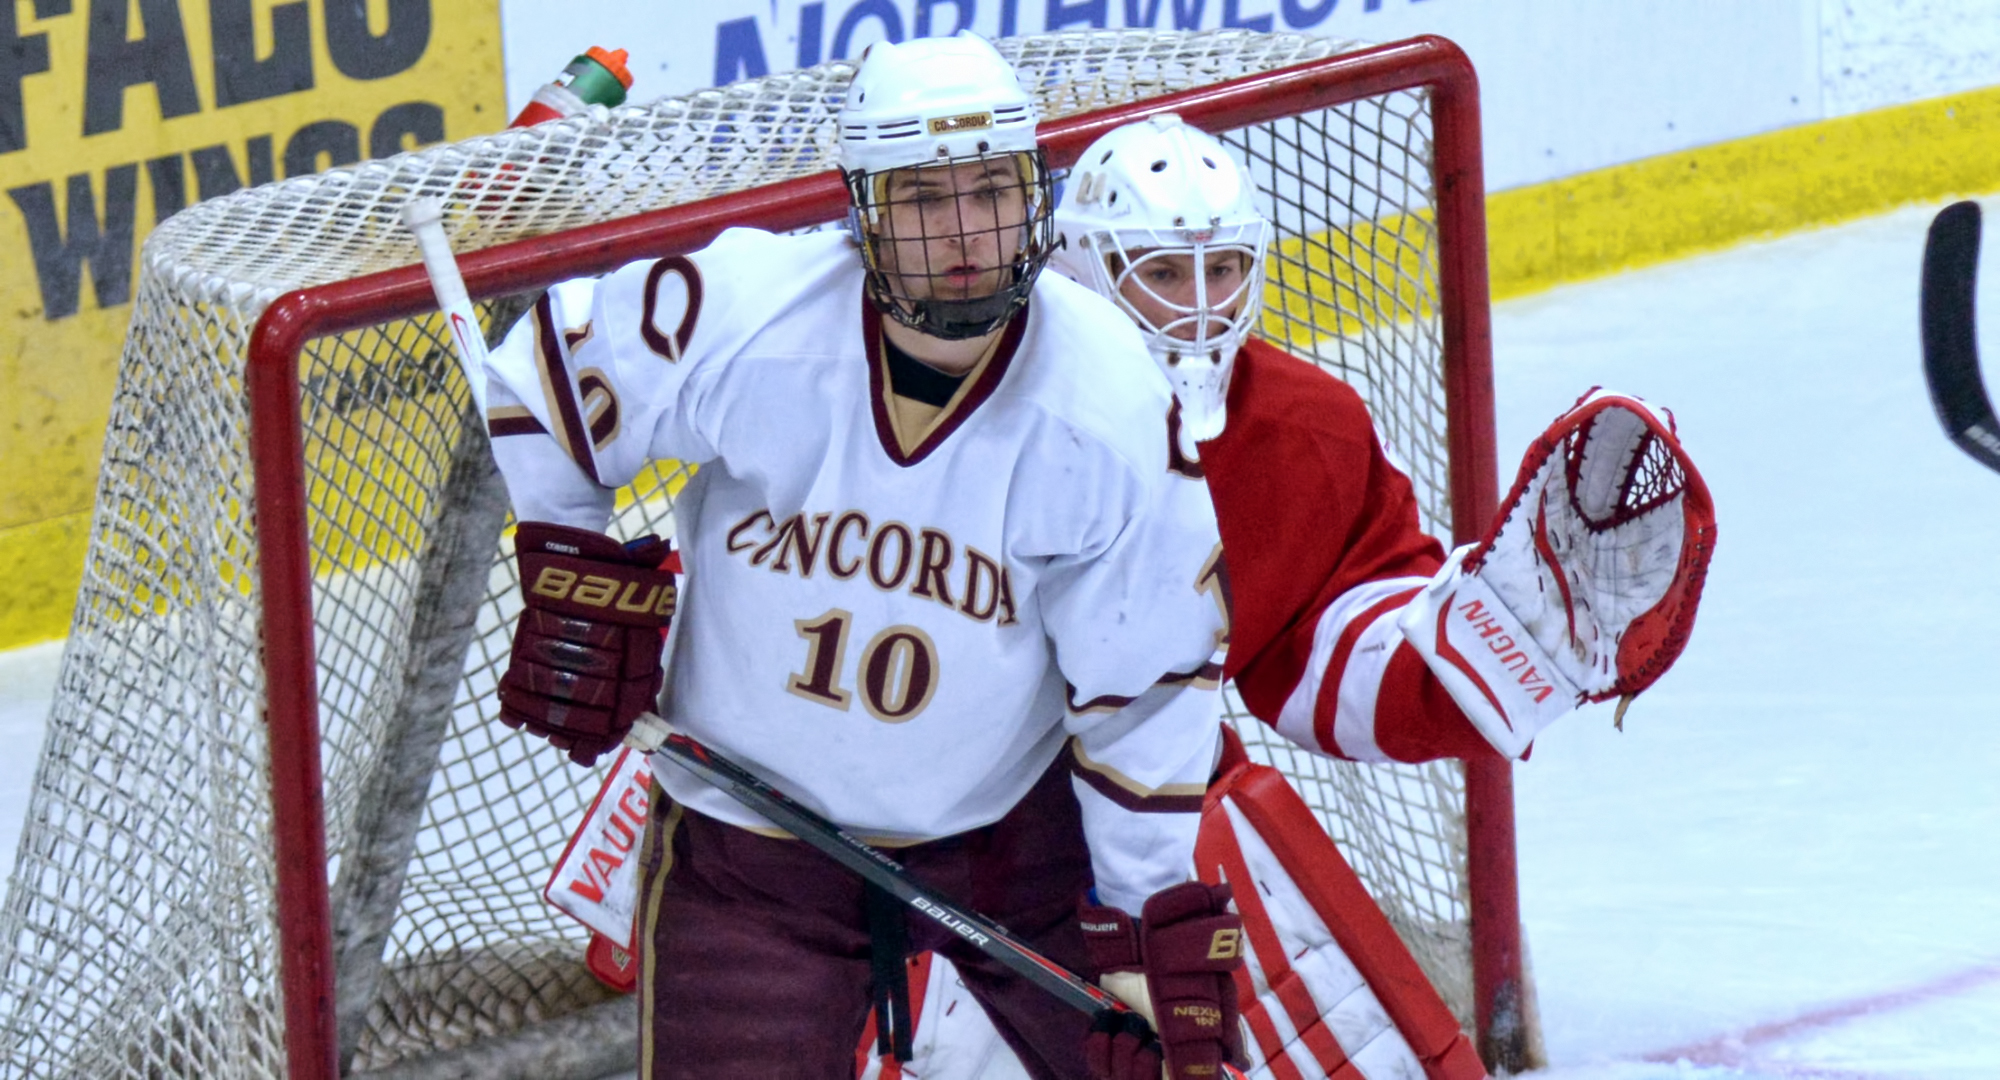 Zach Doerring scored the lone goal for the Cobbers in their series opener at St. John's.